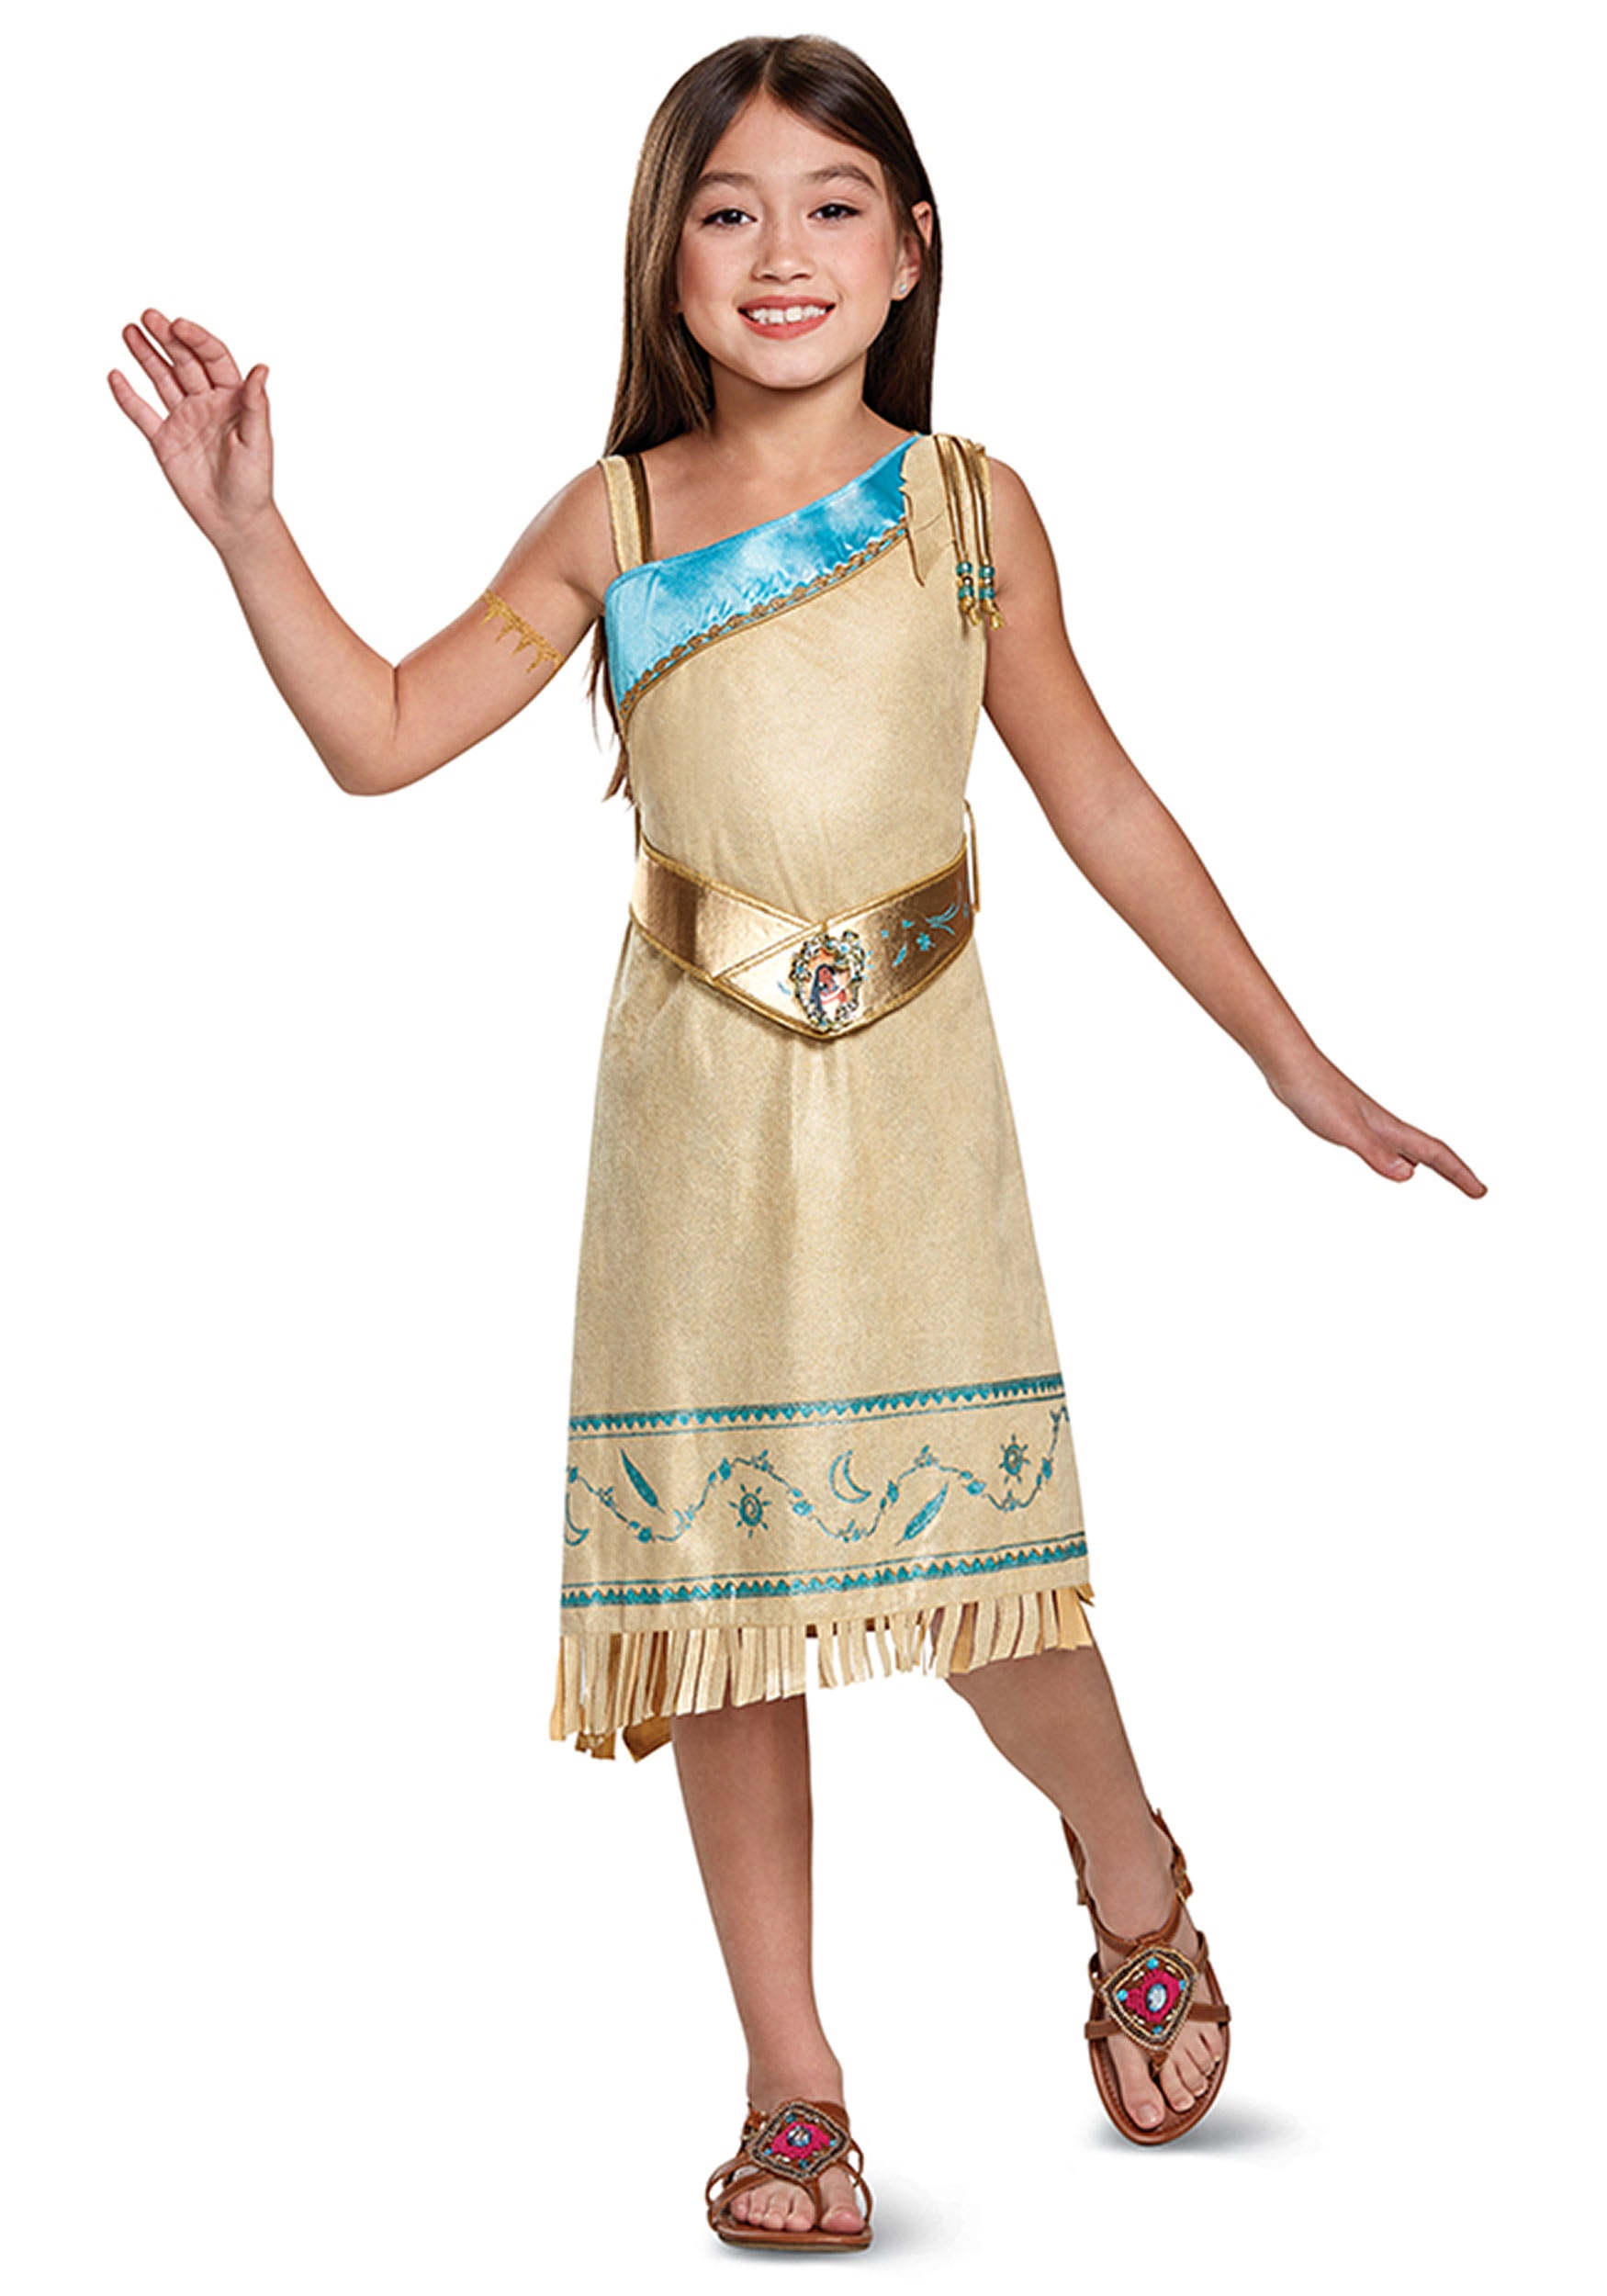 pocahontas deluxe child costume. Black Bedroom Furniture Sets. Home Design Ideas